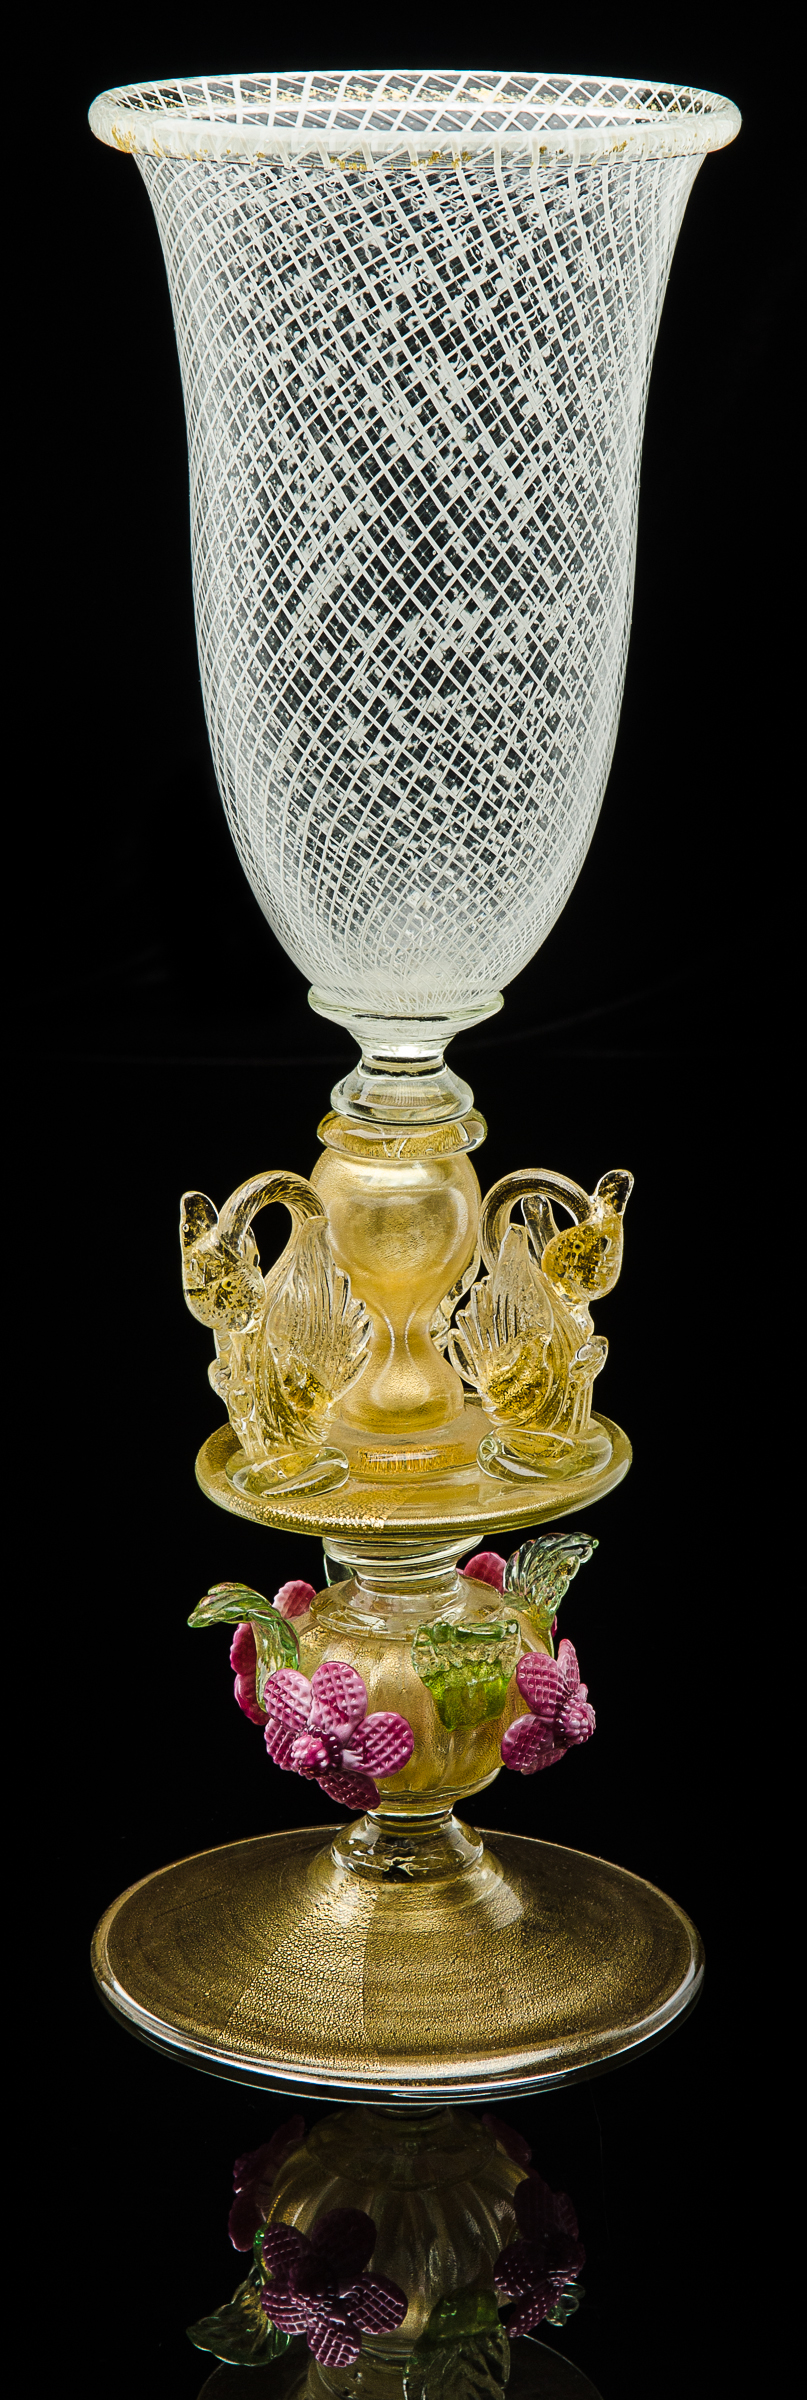 Elite Art Glass Company,  Footed Vetro a Reticello Vase with Swans and Flower  (1985, glass, 17 inches), VV.68